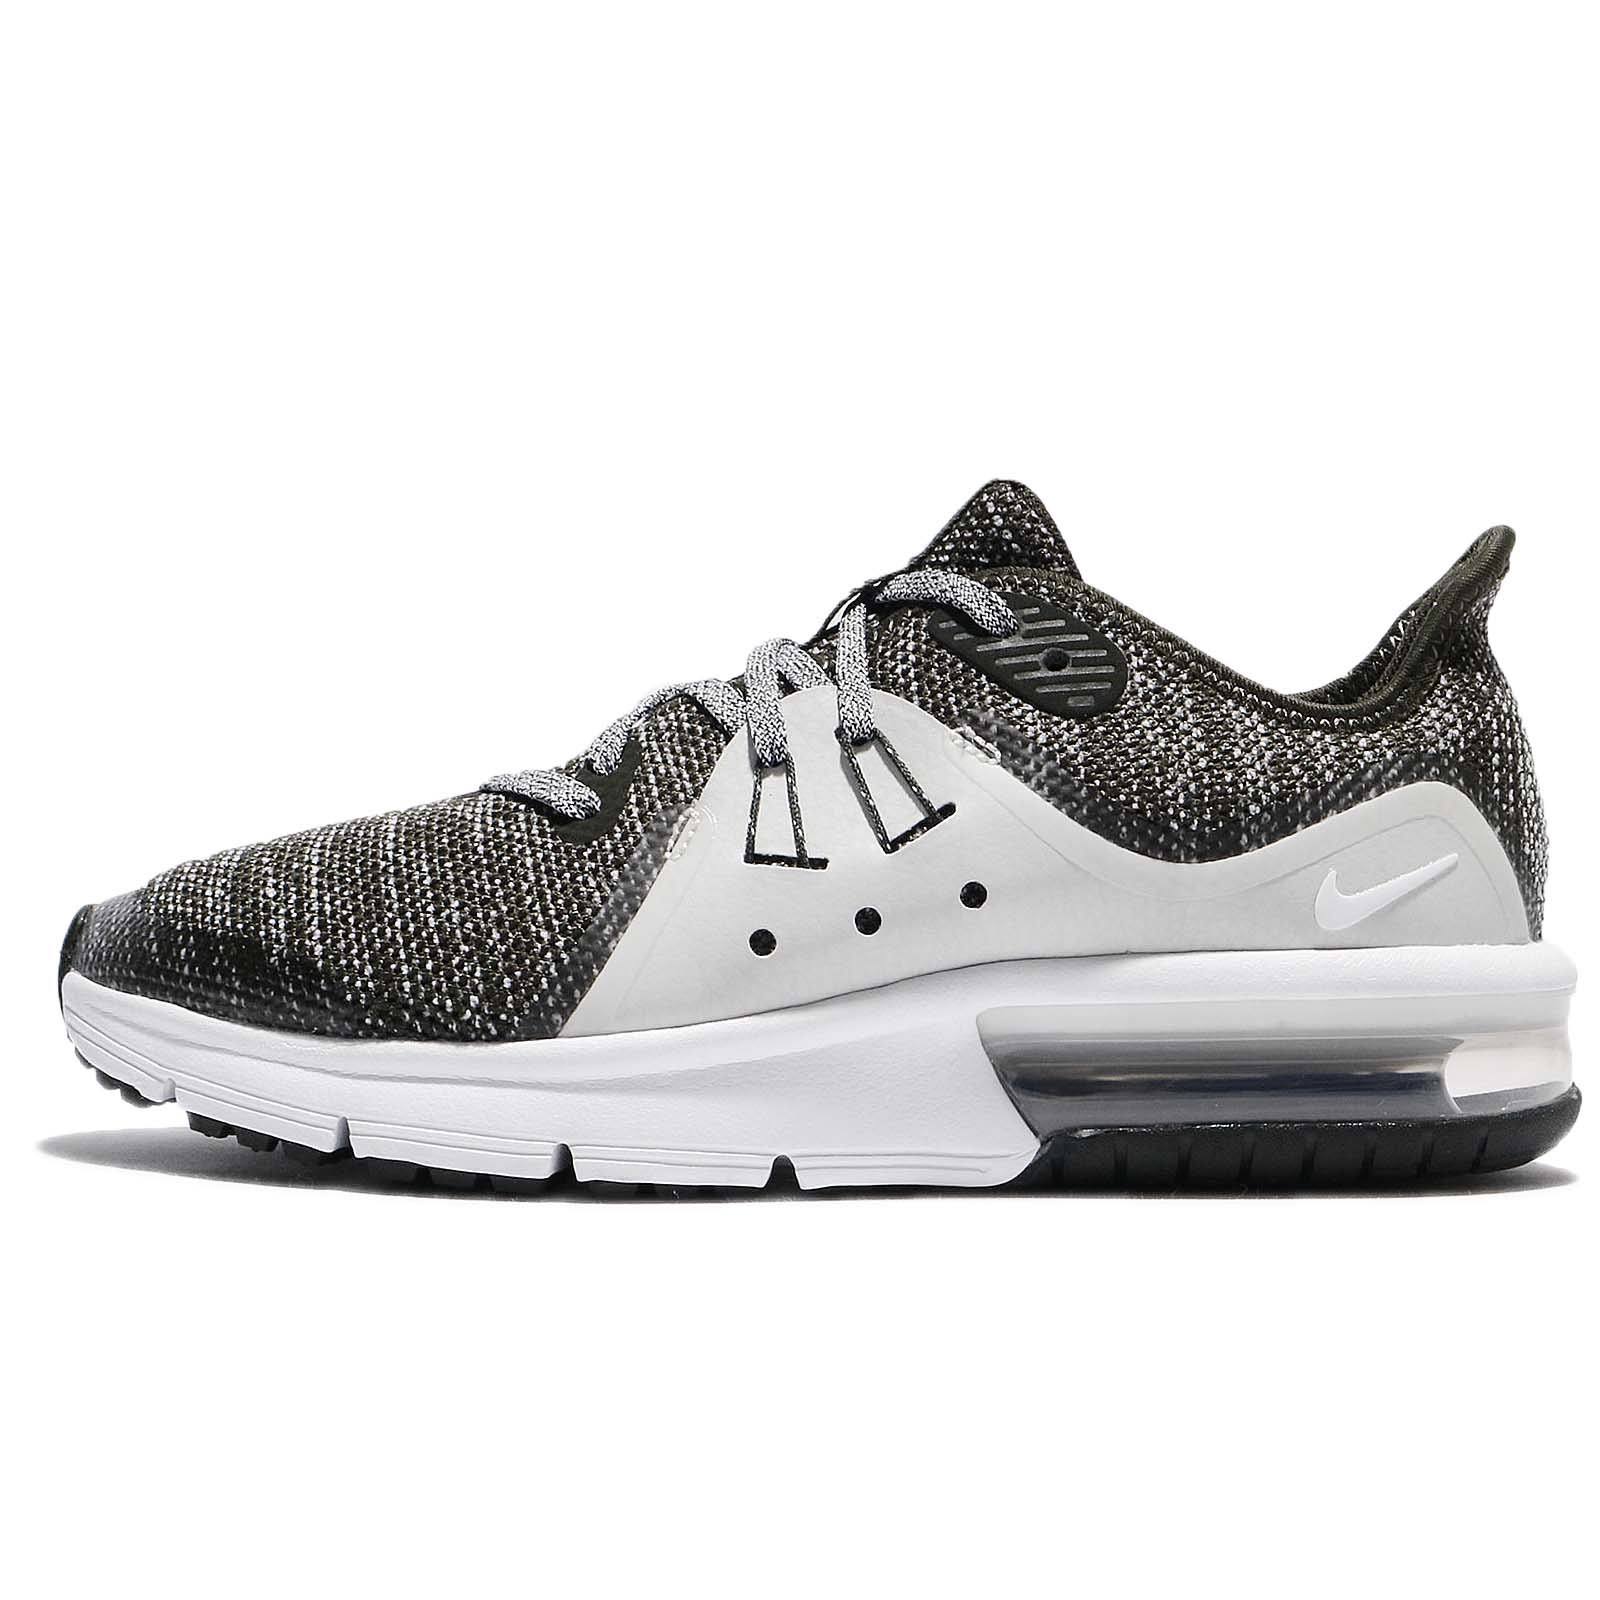 Galleon - Nike Air Max Sequent 3 GS Running Trainers 922884 Sneakers Shoes  (UK 4 US 4.5Y EU 36.5 e9298d955